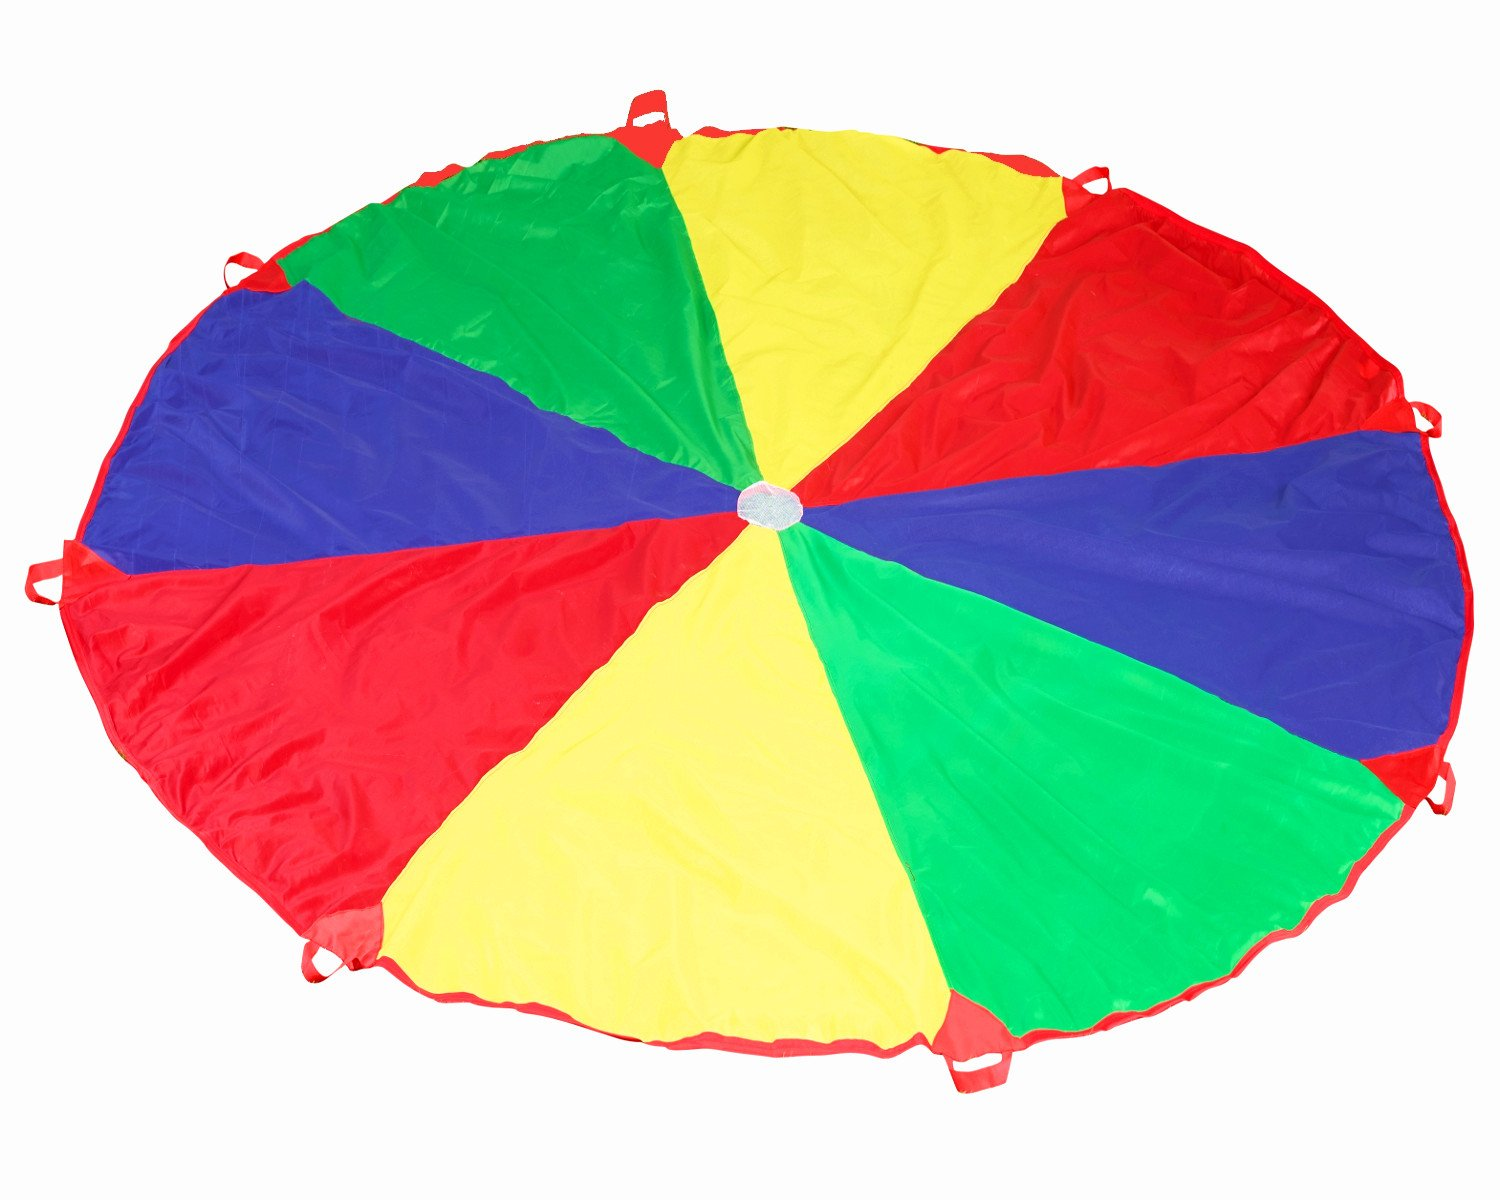 Kids Play Parachute 12ft Kids Sport Parachute with 24 Pit Balls and 8 Easy Hold Handles for Team Game